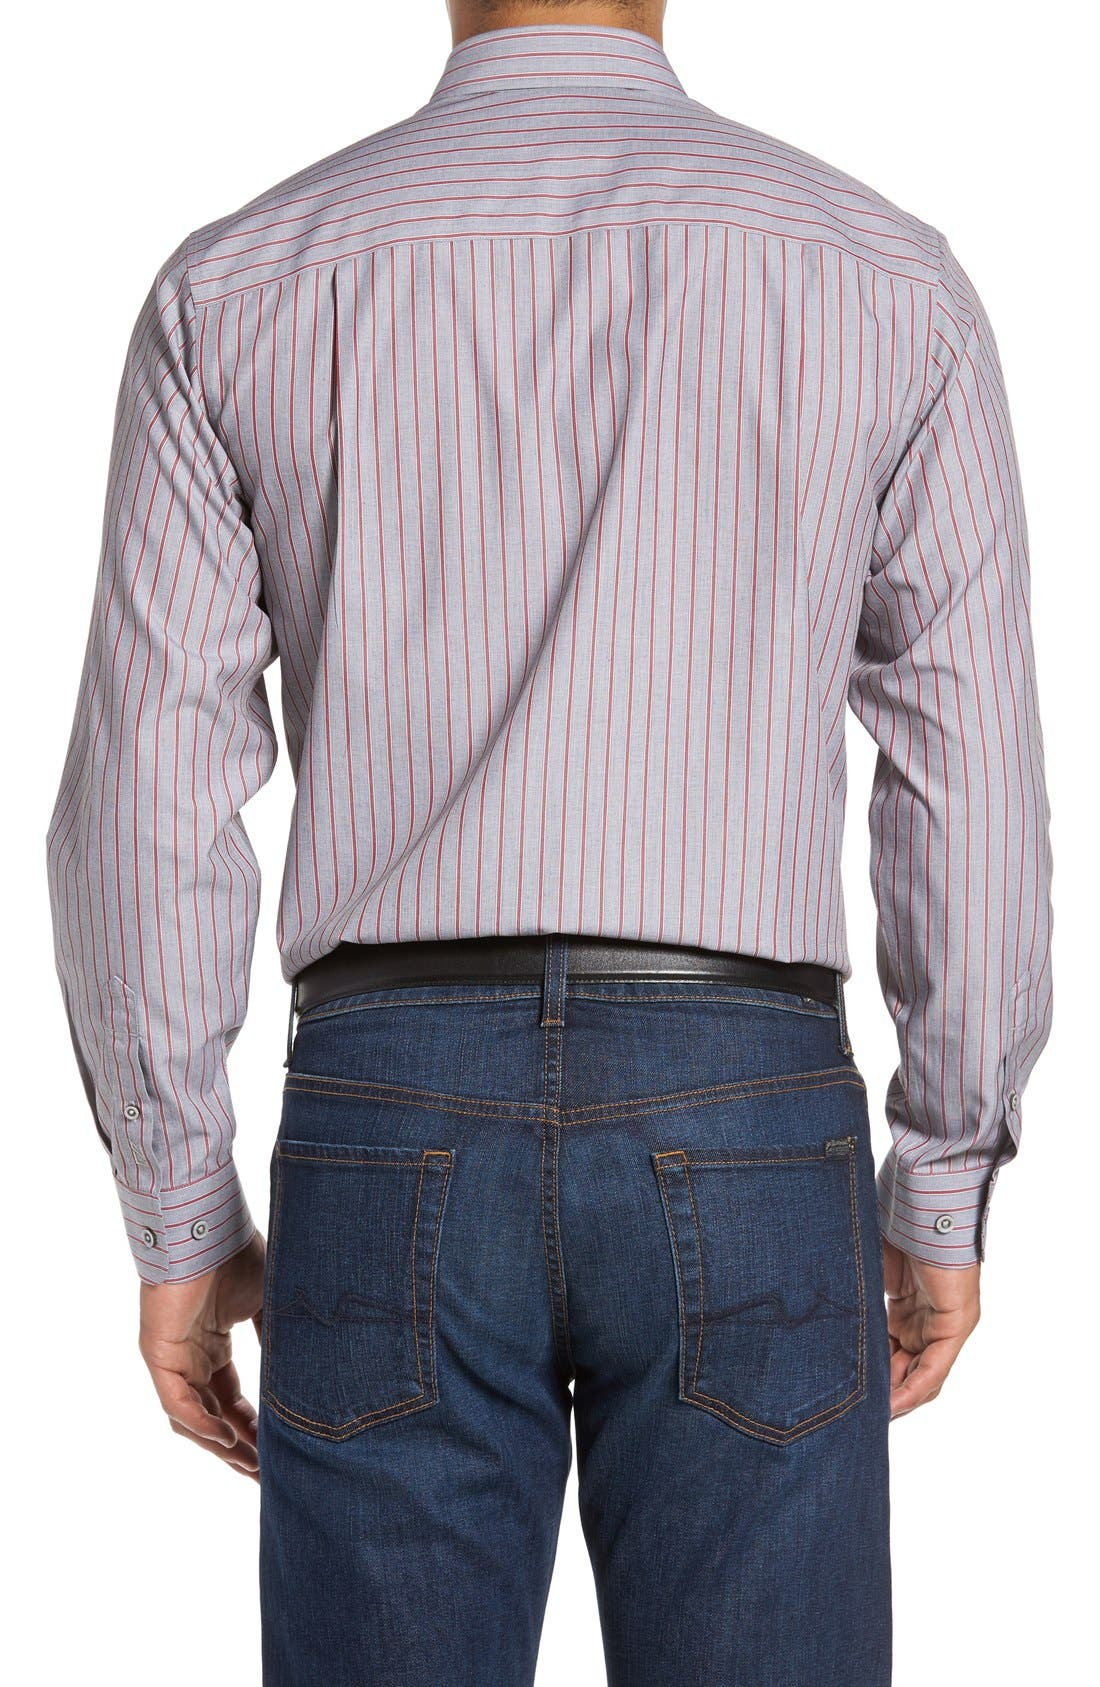 Alternate Image 2  - Cutter & Buck 'Peak' Classic Fit Wrinkle Free Stripe Sport Shirt